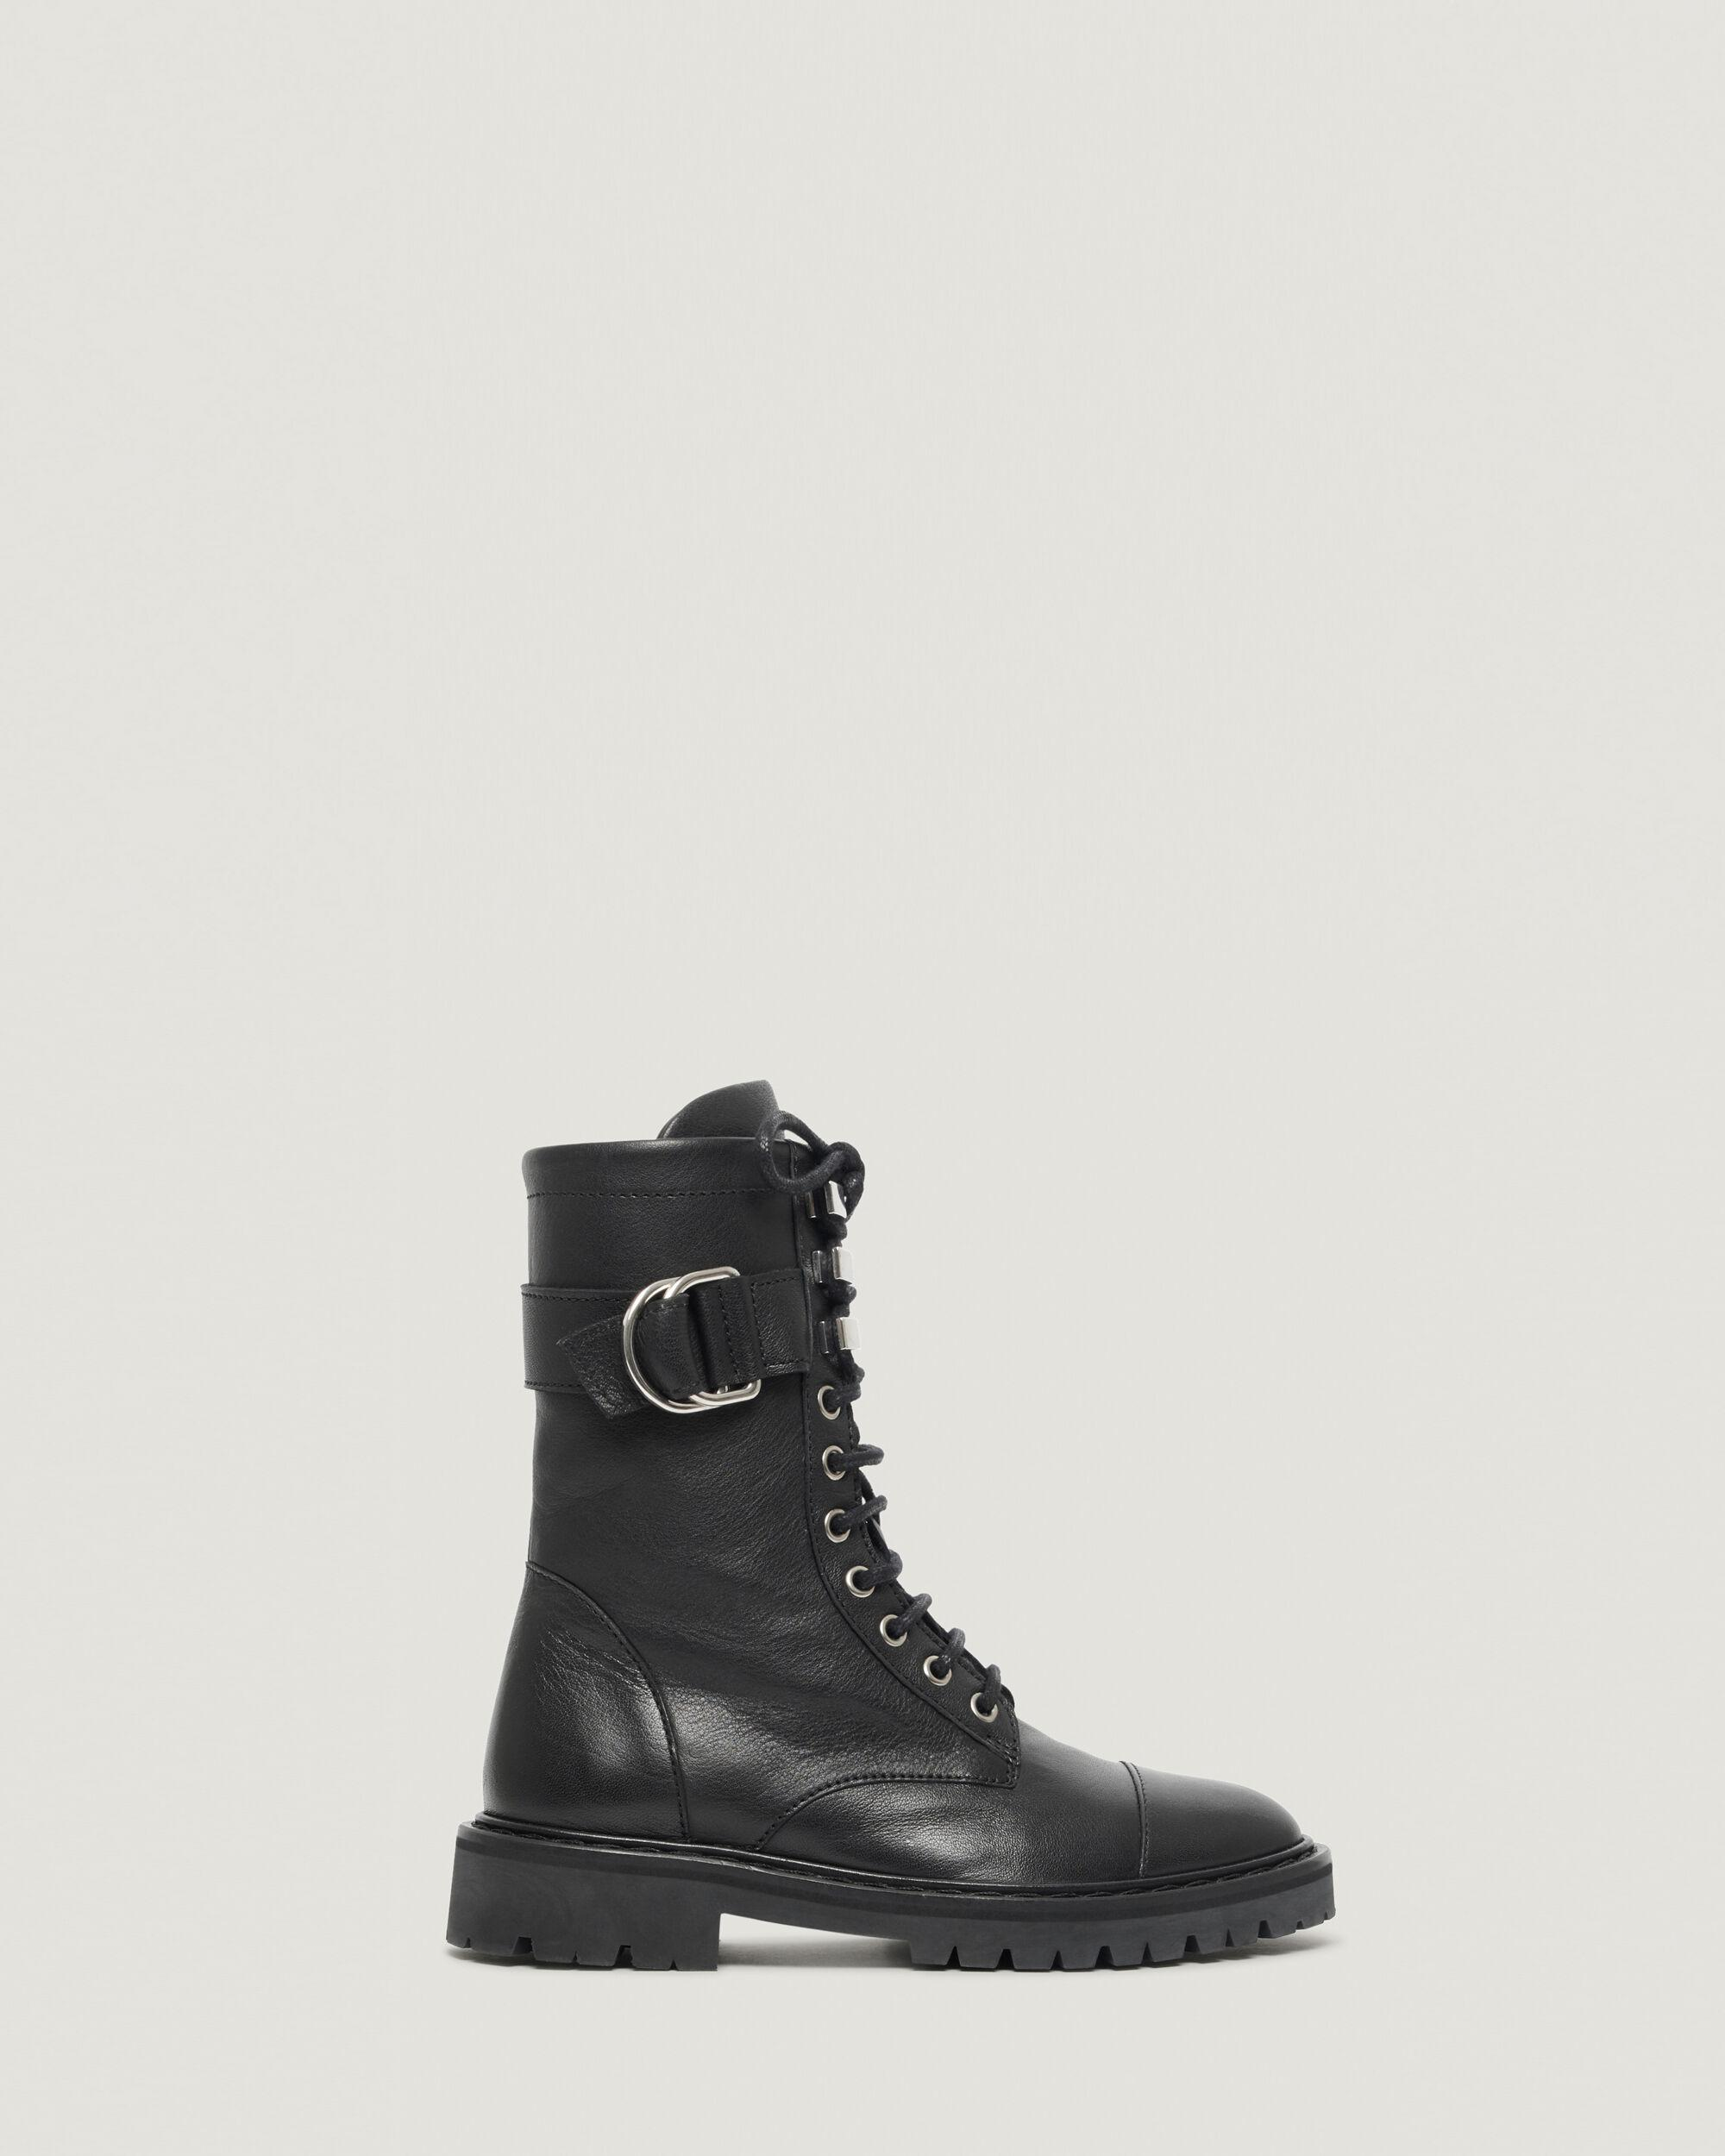 JAUDIE LACE UP LEATHER RANGERS BOOTS